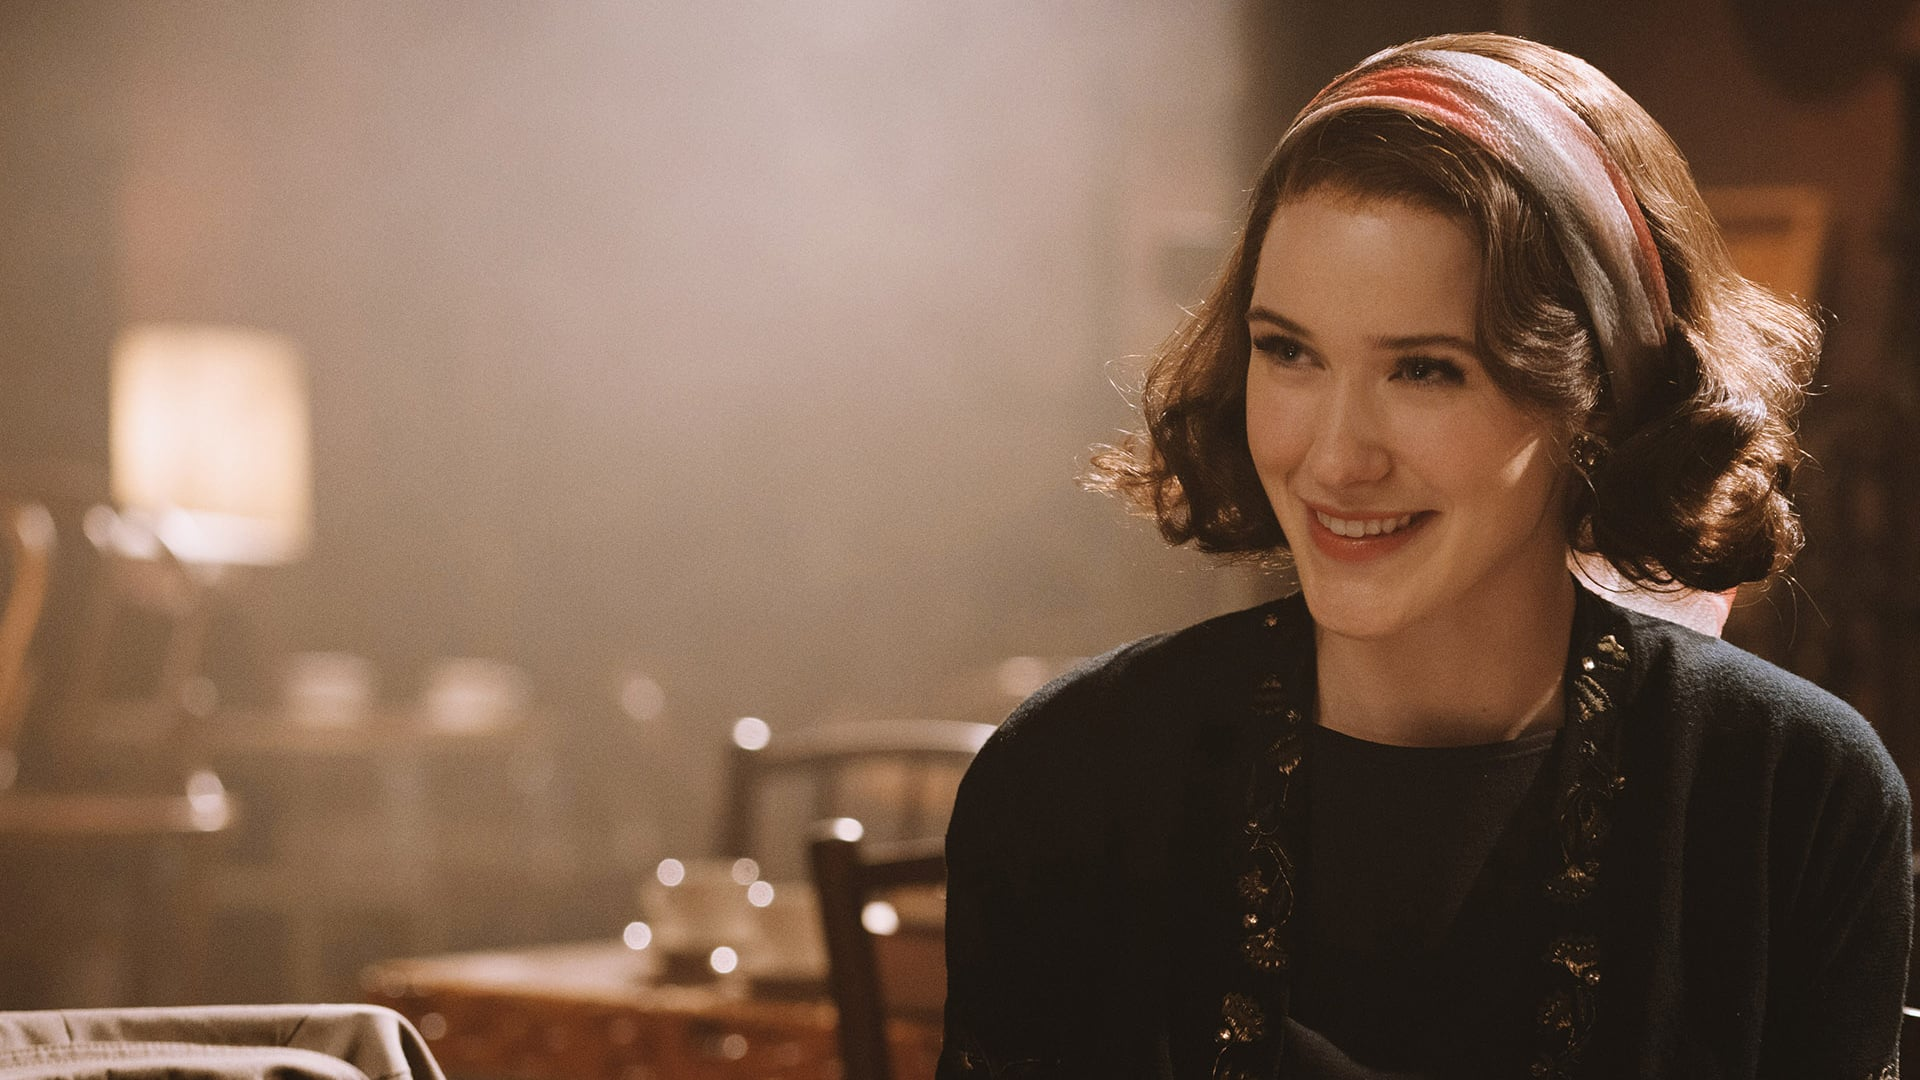 Rachel Brosnahan as Miriam Maisel in The Marvelous Mrs. Maisel